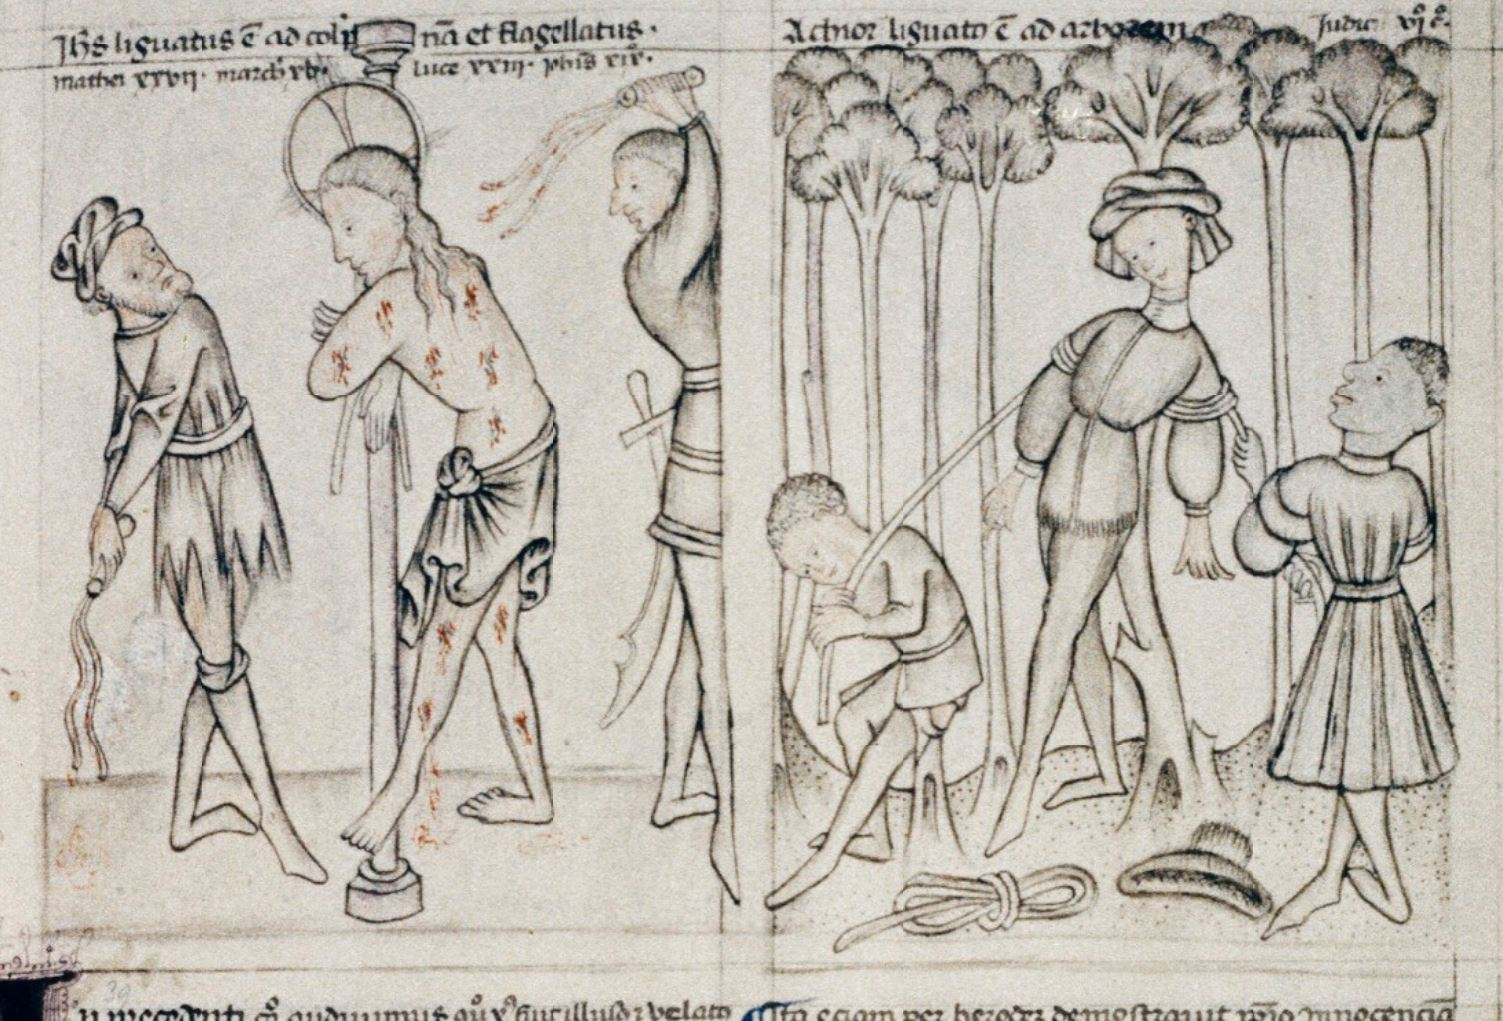 Speculum humanae salvationis 1430-50 Oxford, Bodleian Library Douce 204, fol. 20r